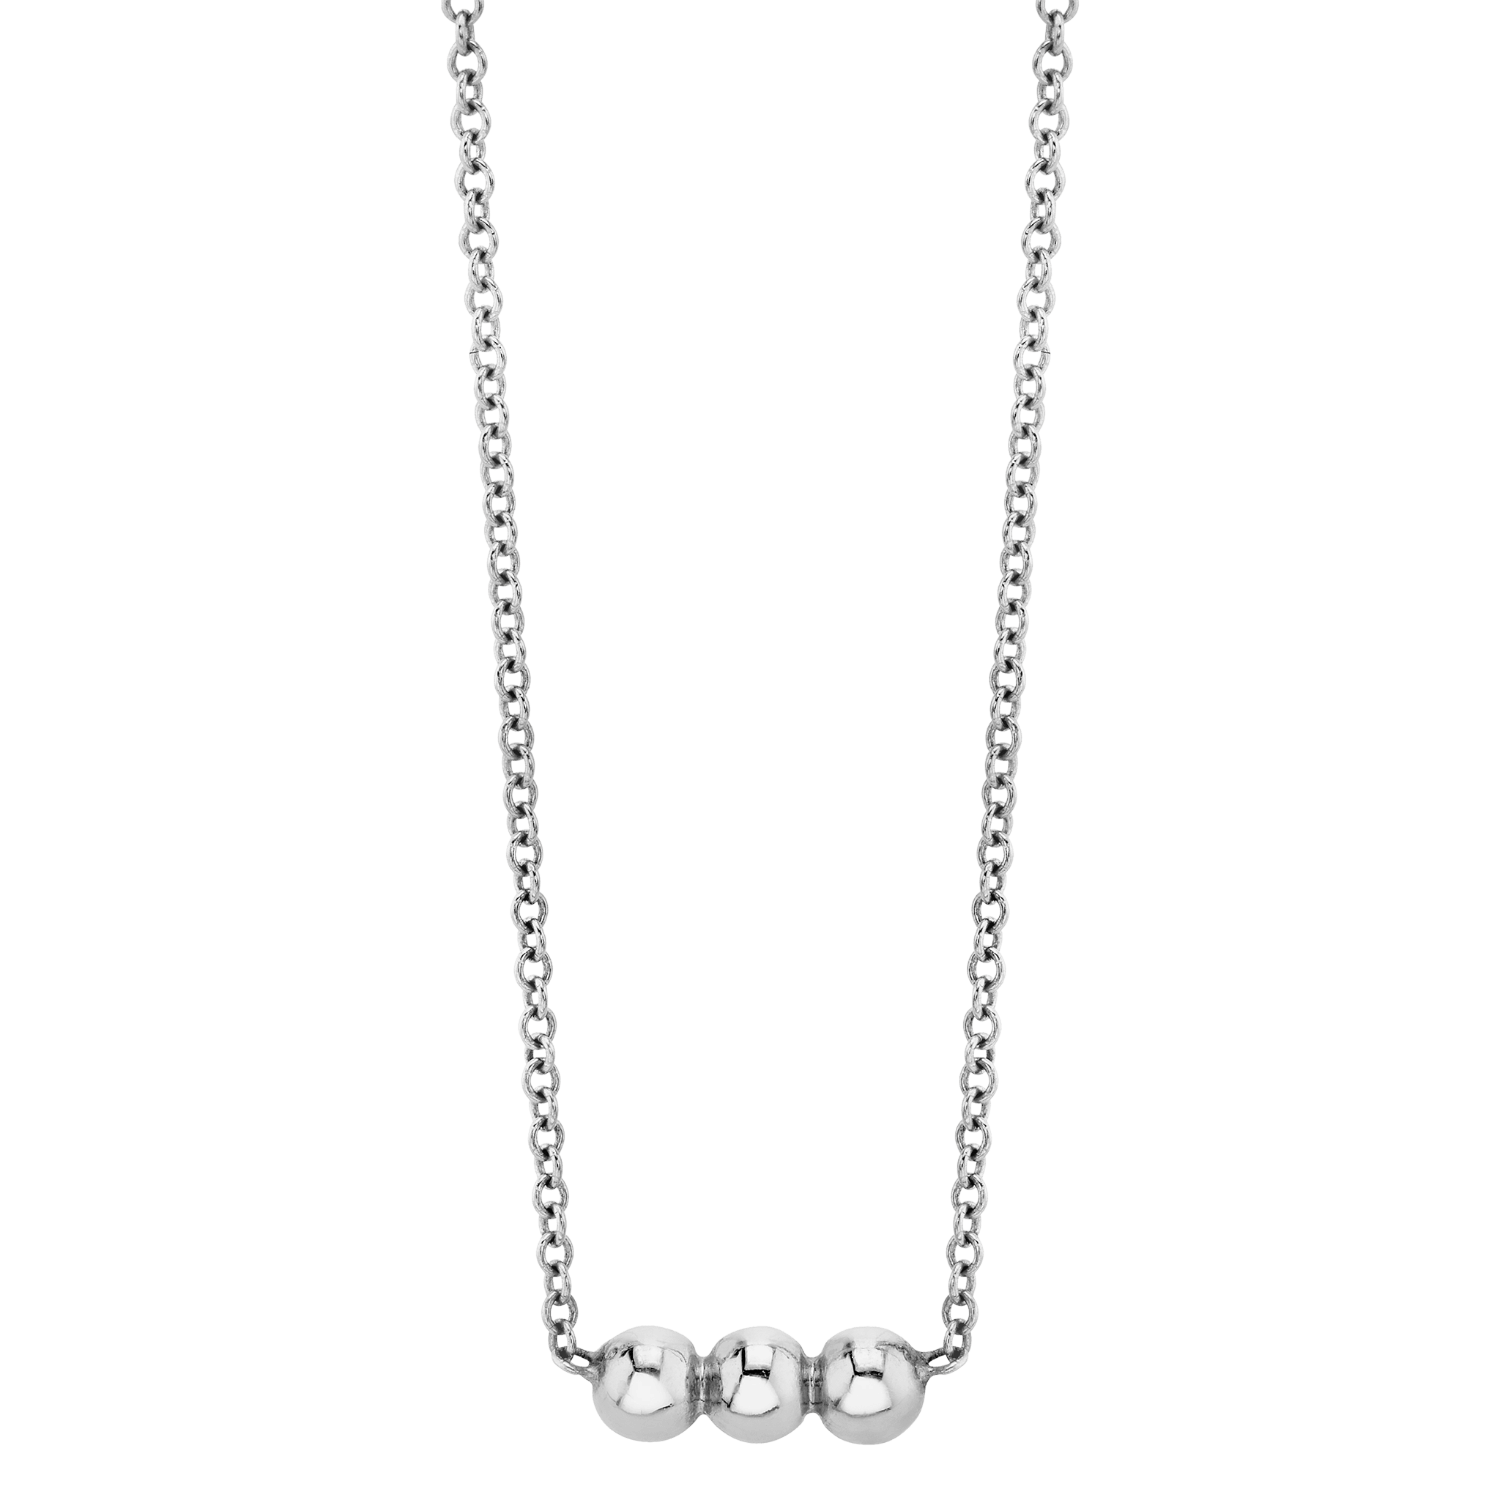 Dainty Trio Ball Necklace